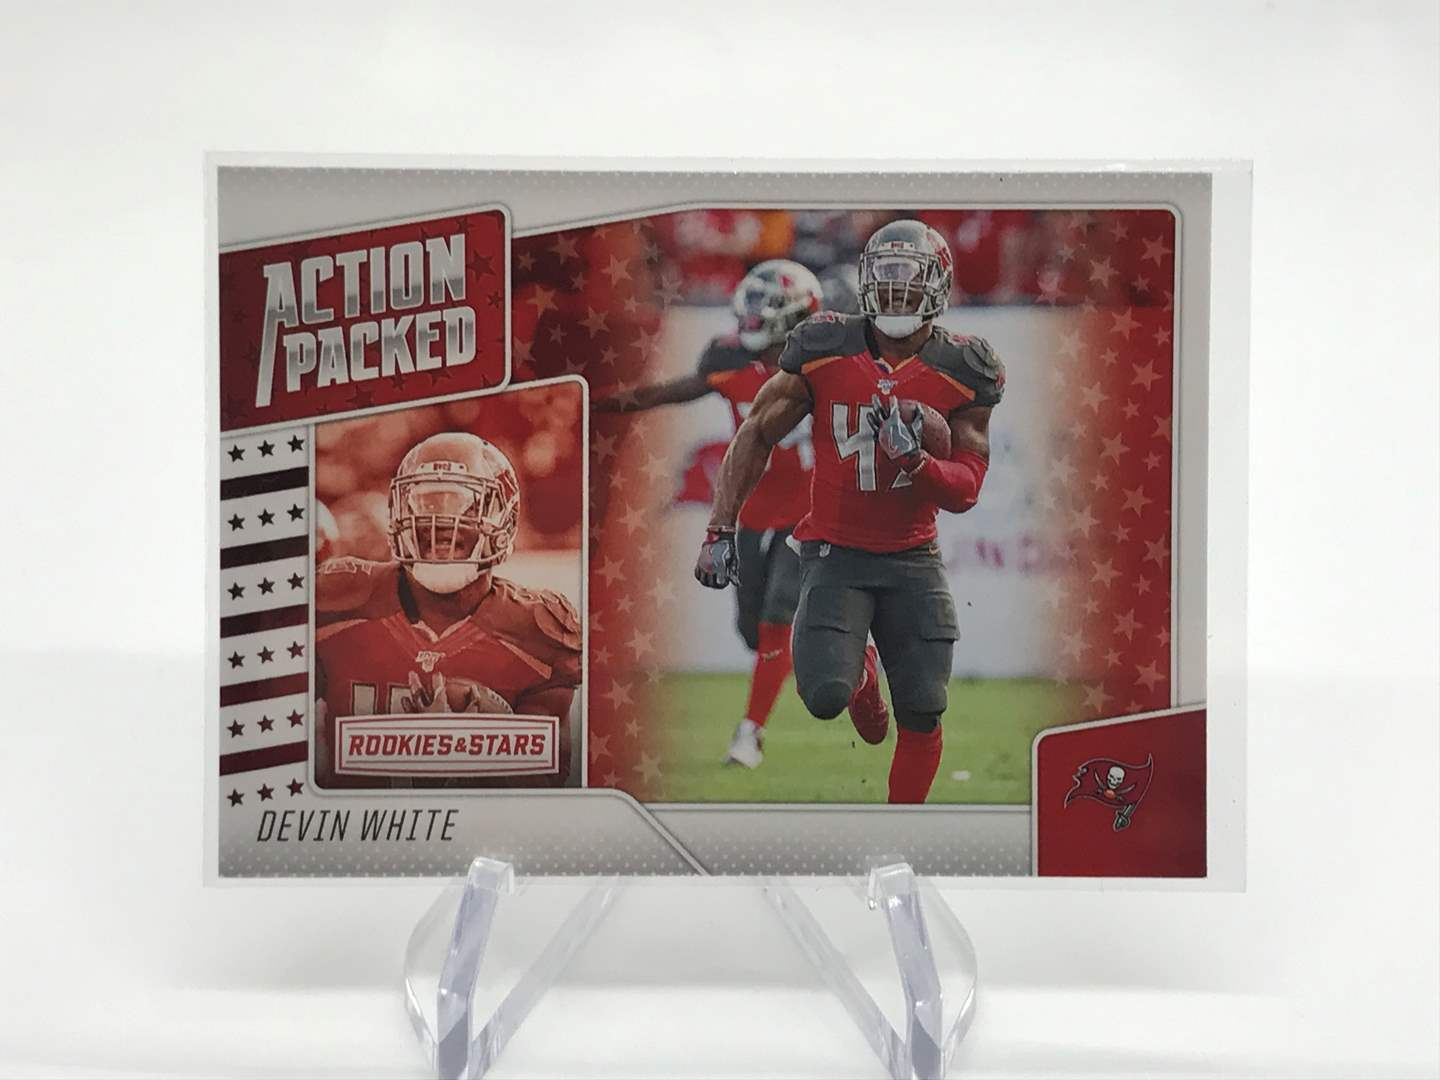 Lot # 264 2020 Rookies & Stars Action Packed DEVIN WHITE (main image)